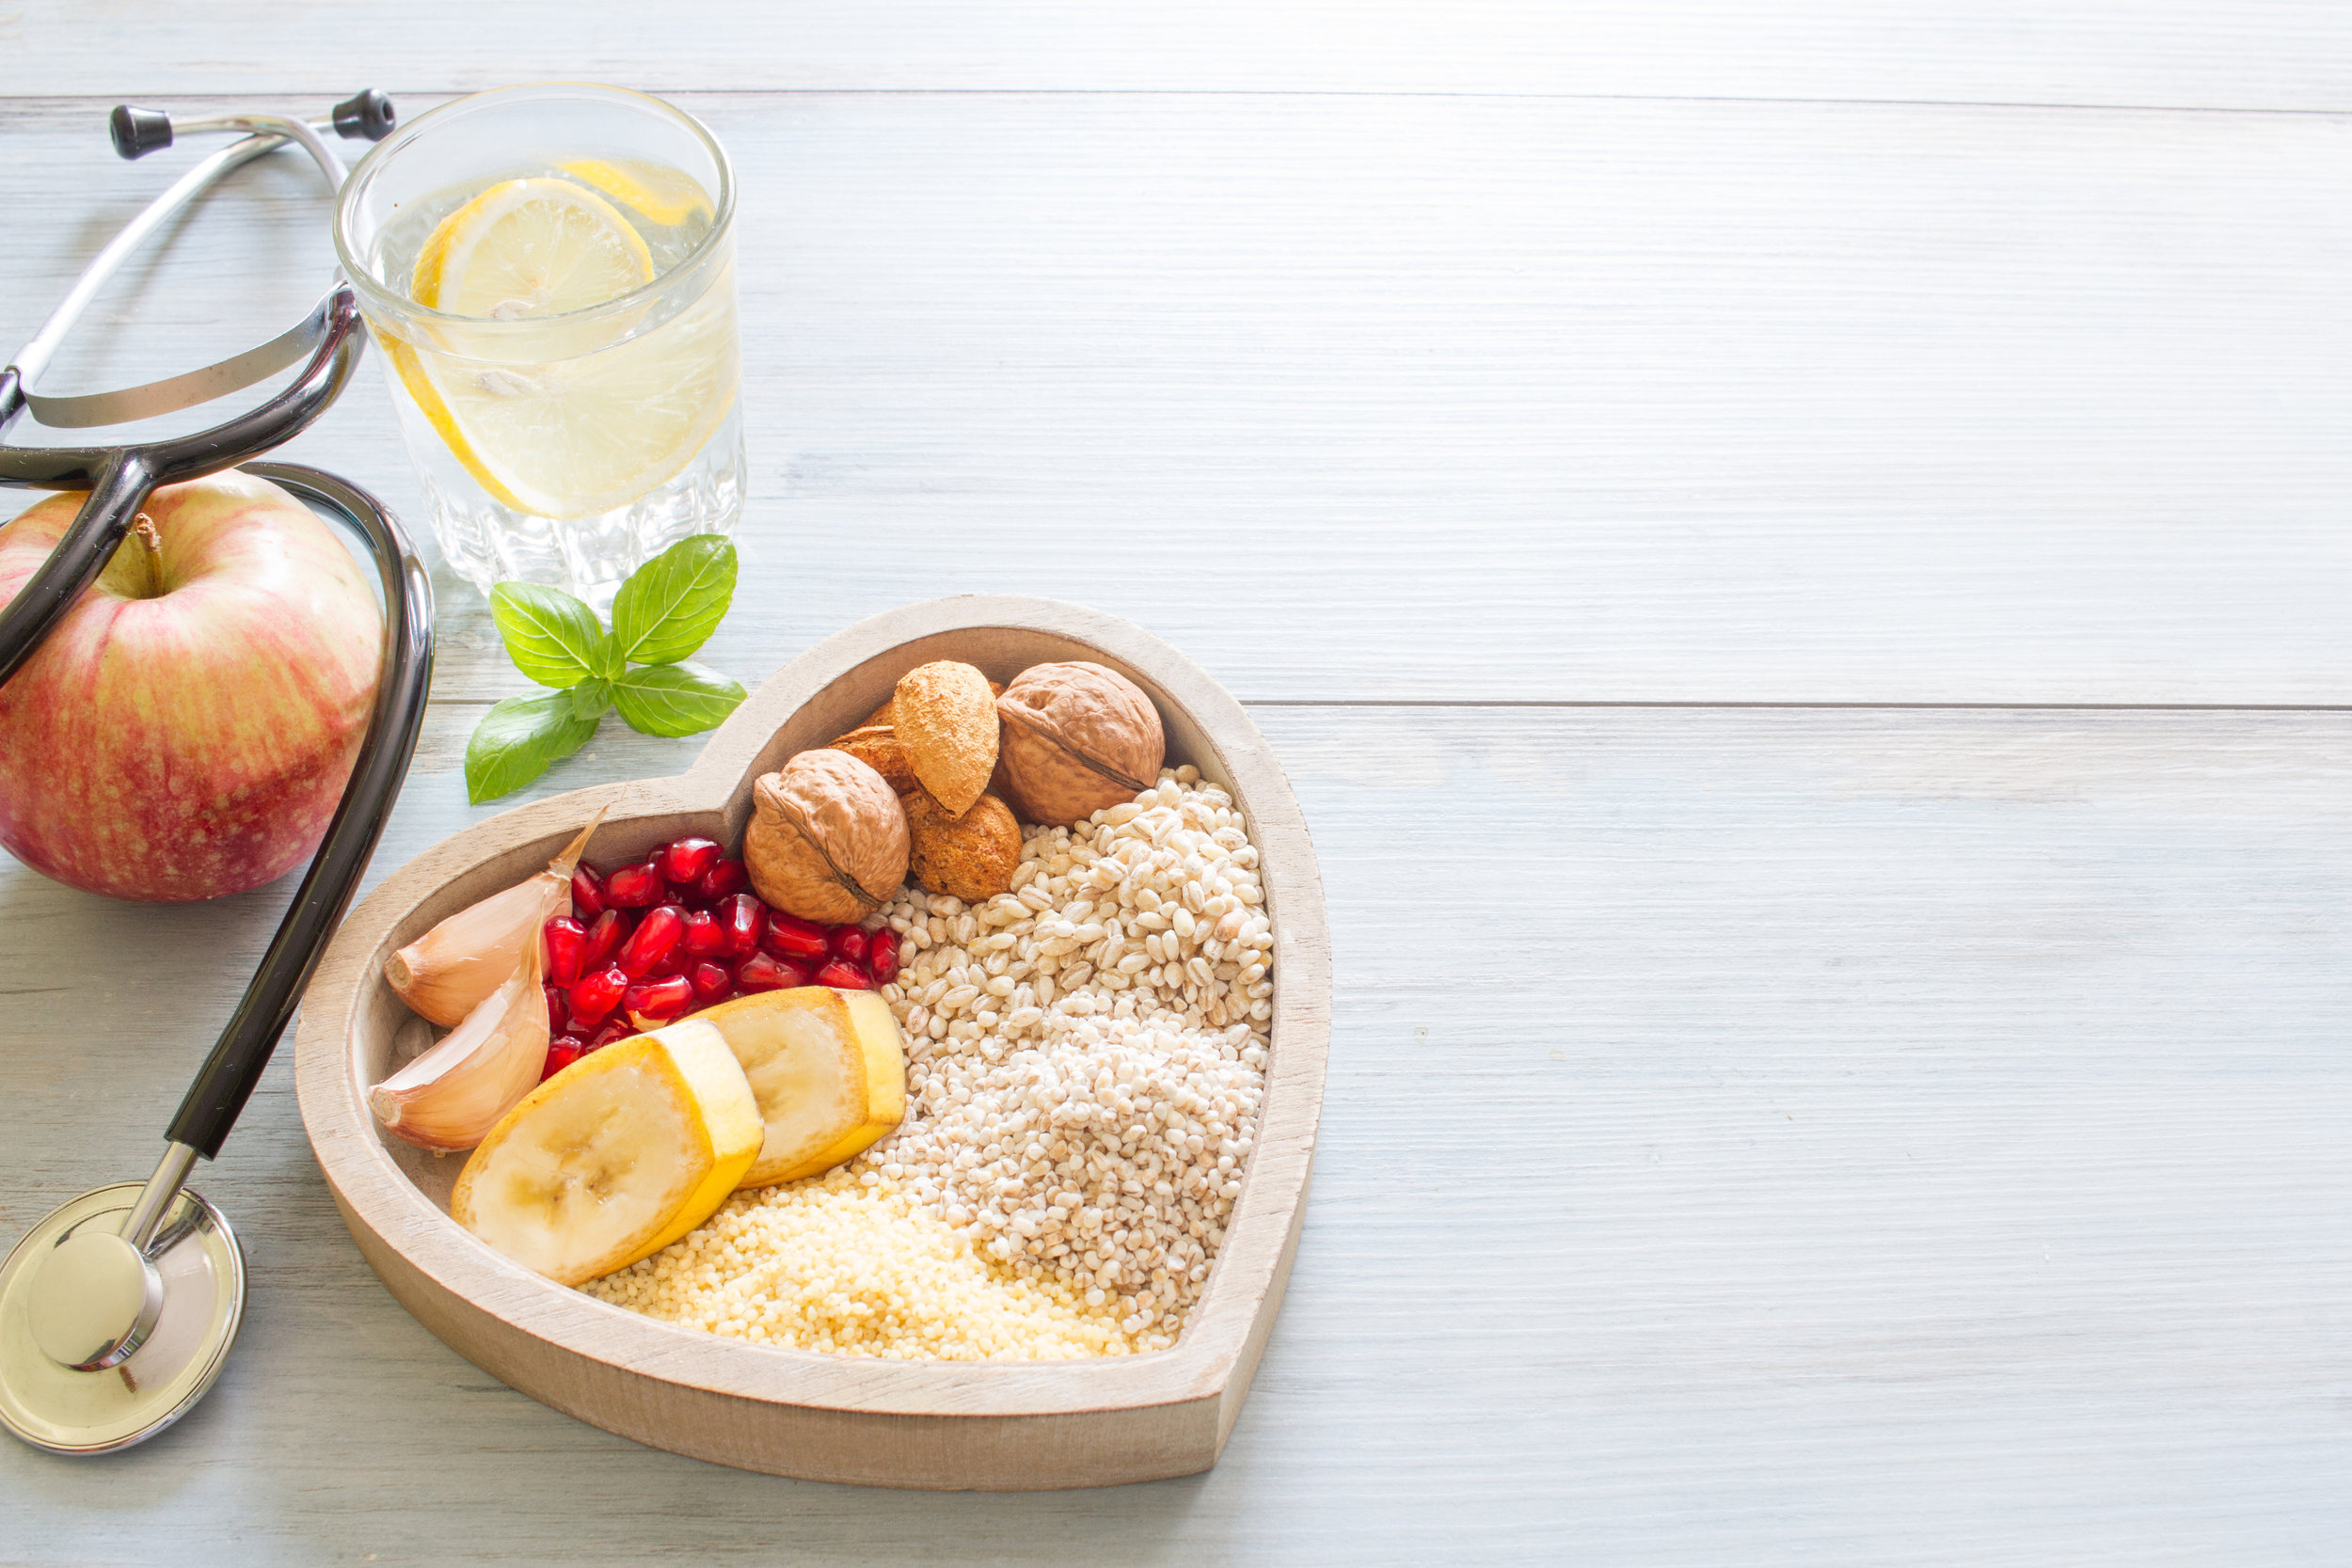 Our nutritionist works with our clinical team to help treat type 2 diabetes, excess weight, high blood pressure, high cholesterol and other chronic conditions -